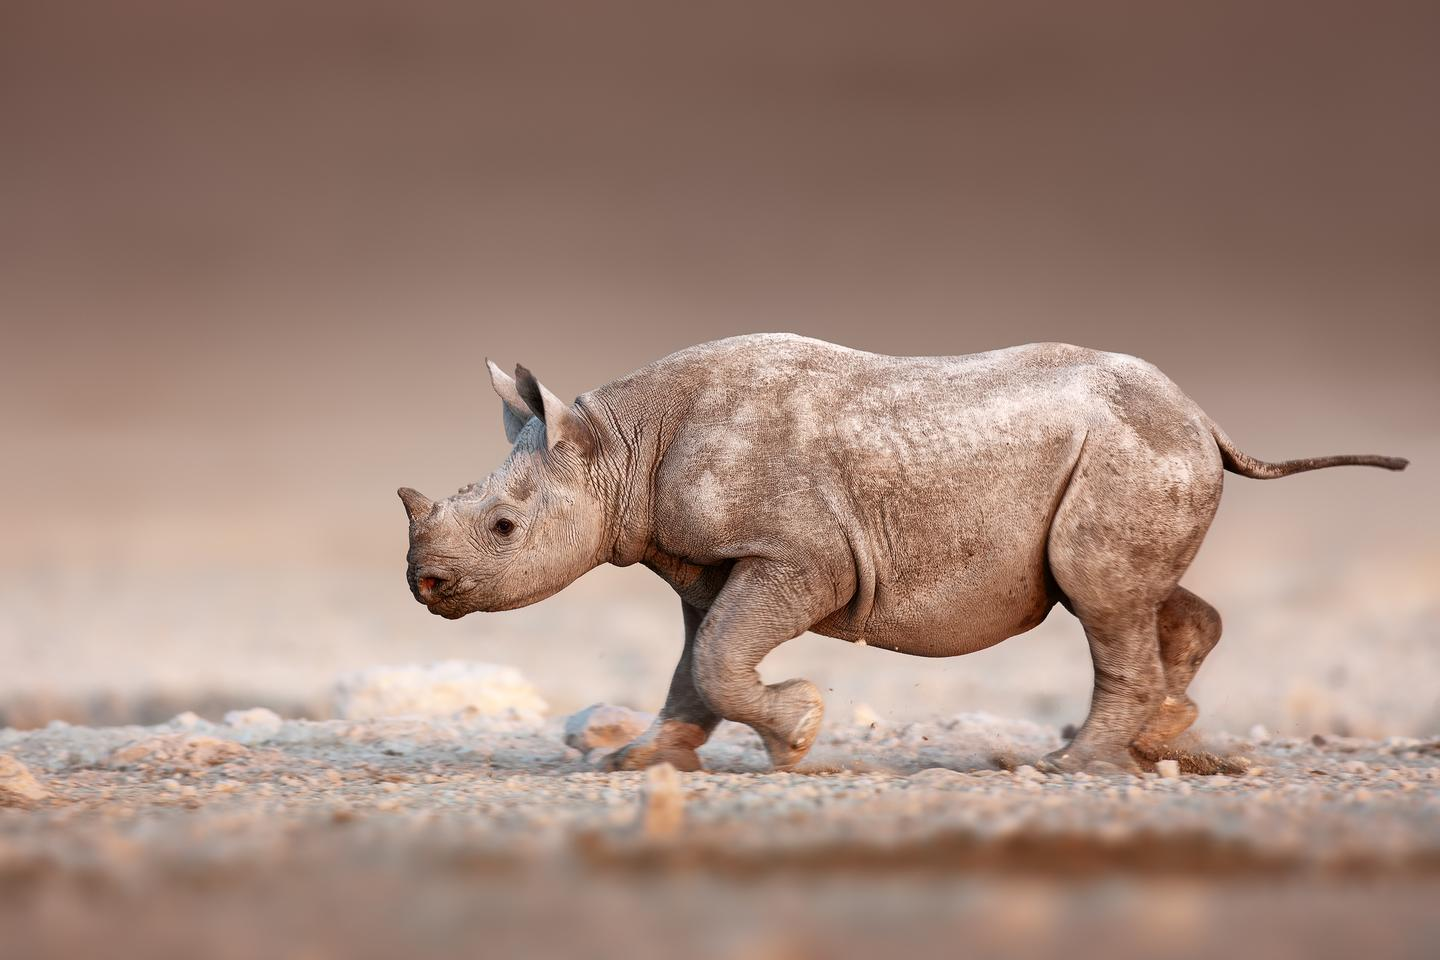 A baby black rhinoceros leaves its telltale footprints in the soil